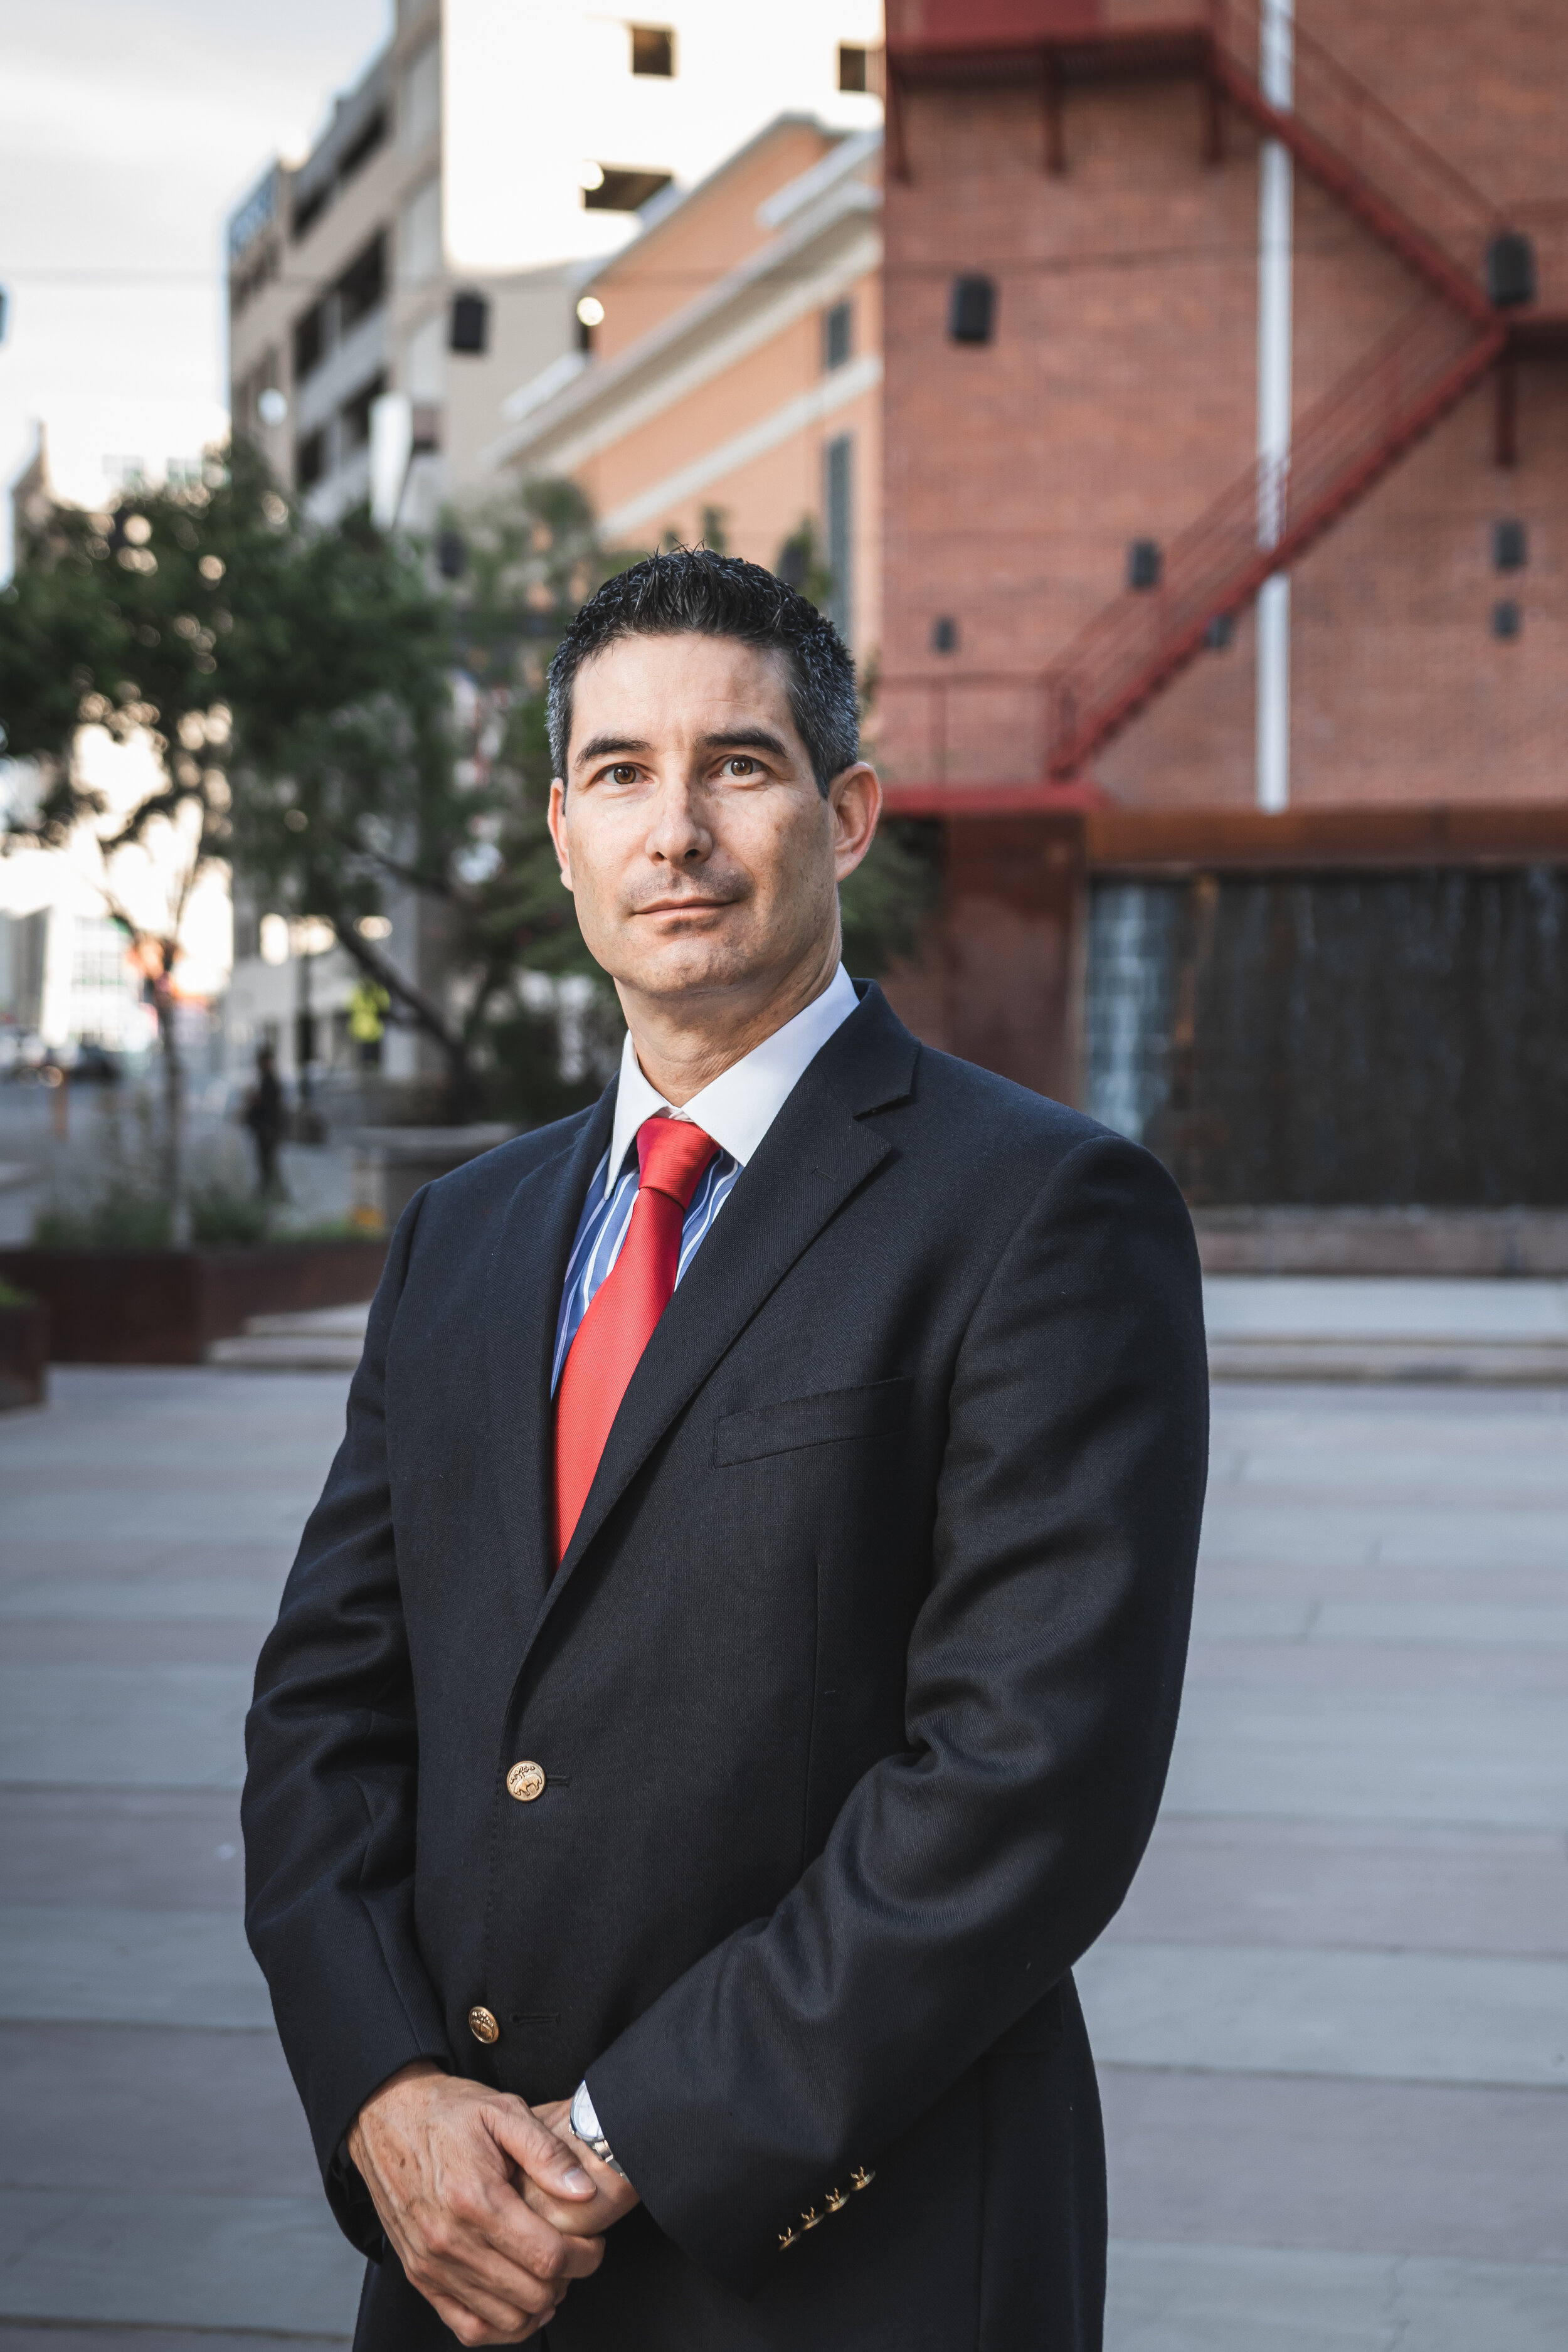 ANGEL RAMOS-TAMAYO, ARCHITECT - Firm PrincipalAngel Ramos-Tamayo is a registered architect with over twenty three years of experience, fifteen as senior architect and co-founder of New Republic Architects. Mr. Ramos is a LEED NC accredited professional (Leadership in Energy and Environmental Design) with the US Green Building Council, he also holds the congress for new urbanism accreditation from the university of Miami and is past President of the American Institute of Architects El Paso Chapter. He has served as senior architect on a broad range of educational, institutional, commercial and retail projects.Mr. Ramos' emphasis in advanced project management propels the New Republic team to be one of the best architectural firms in the region.Education:Bachelor in Architecture - 1995Professional Registrations: Registered Architect TX, 19667 Registered Architect NM 00487 Registered Architect AZ 48956 LEED Accredited Professional LEED Accredited ProfessionalProfessional Affiliations:American Institute of ArchitectsTexas Society of ArchitectsNCARB CertificationCongress for New Urbanism